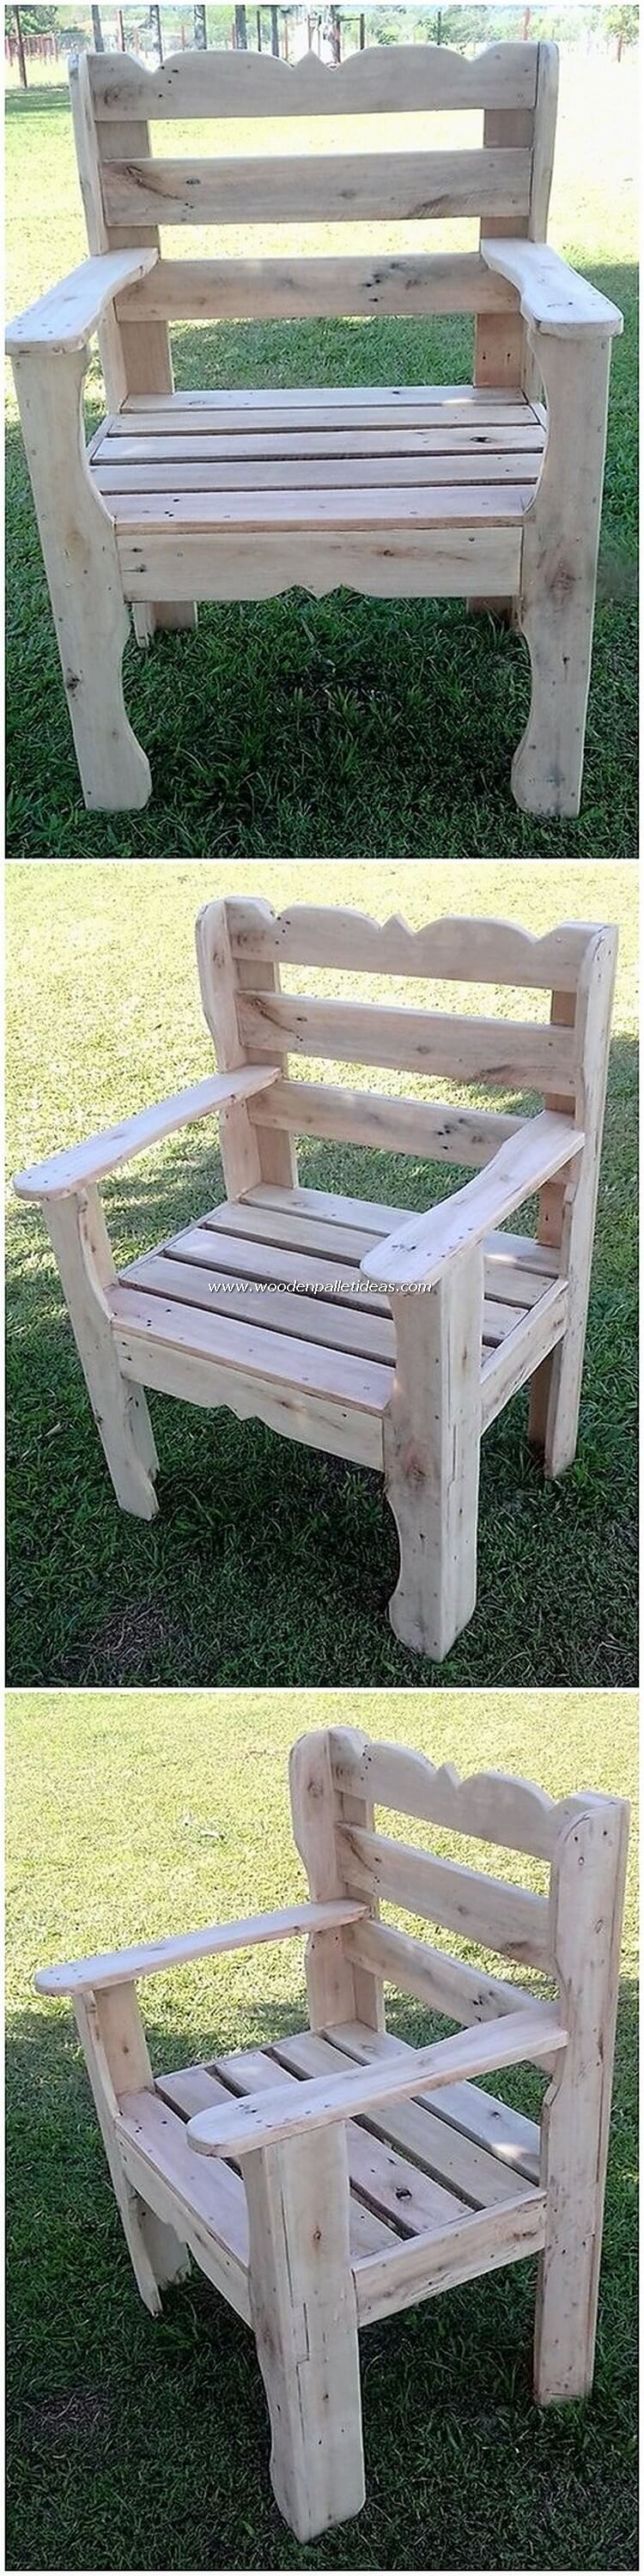 Wondrous Excellent Diy Creations With Old Wooden Pallets Wooden Ibusinesslaw Wood Chair Design Ideas Ibusinesslaworg